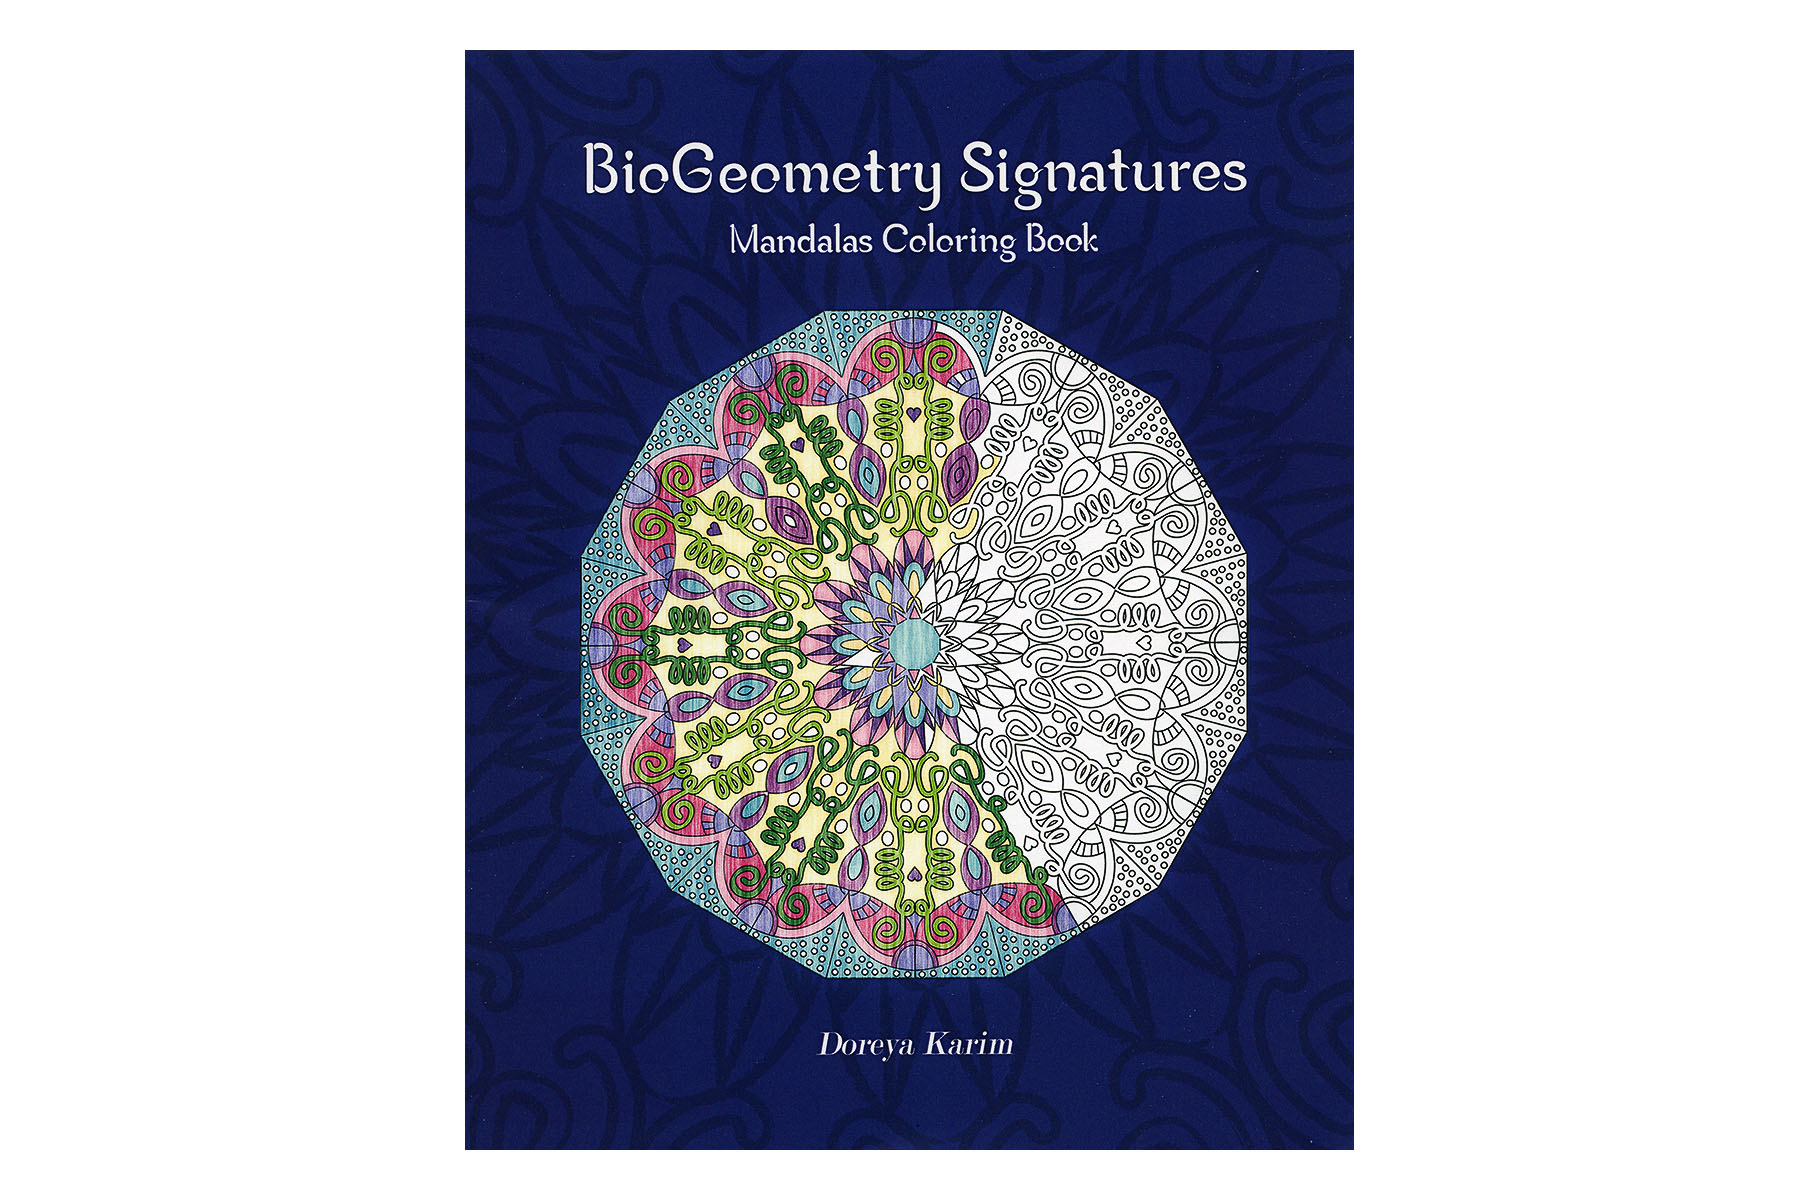 BioGeometry Signatures Mandalas Coloring Book - BioGeometry Europe